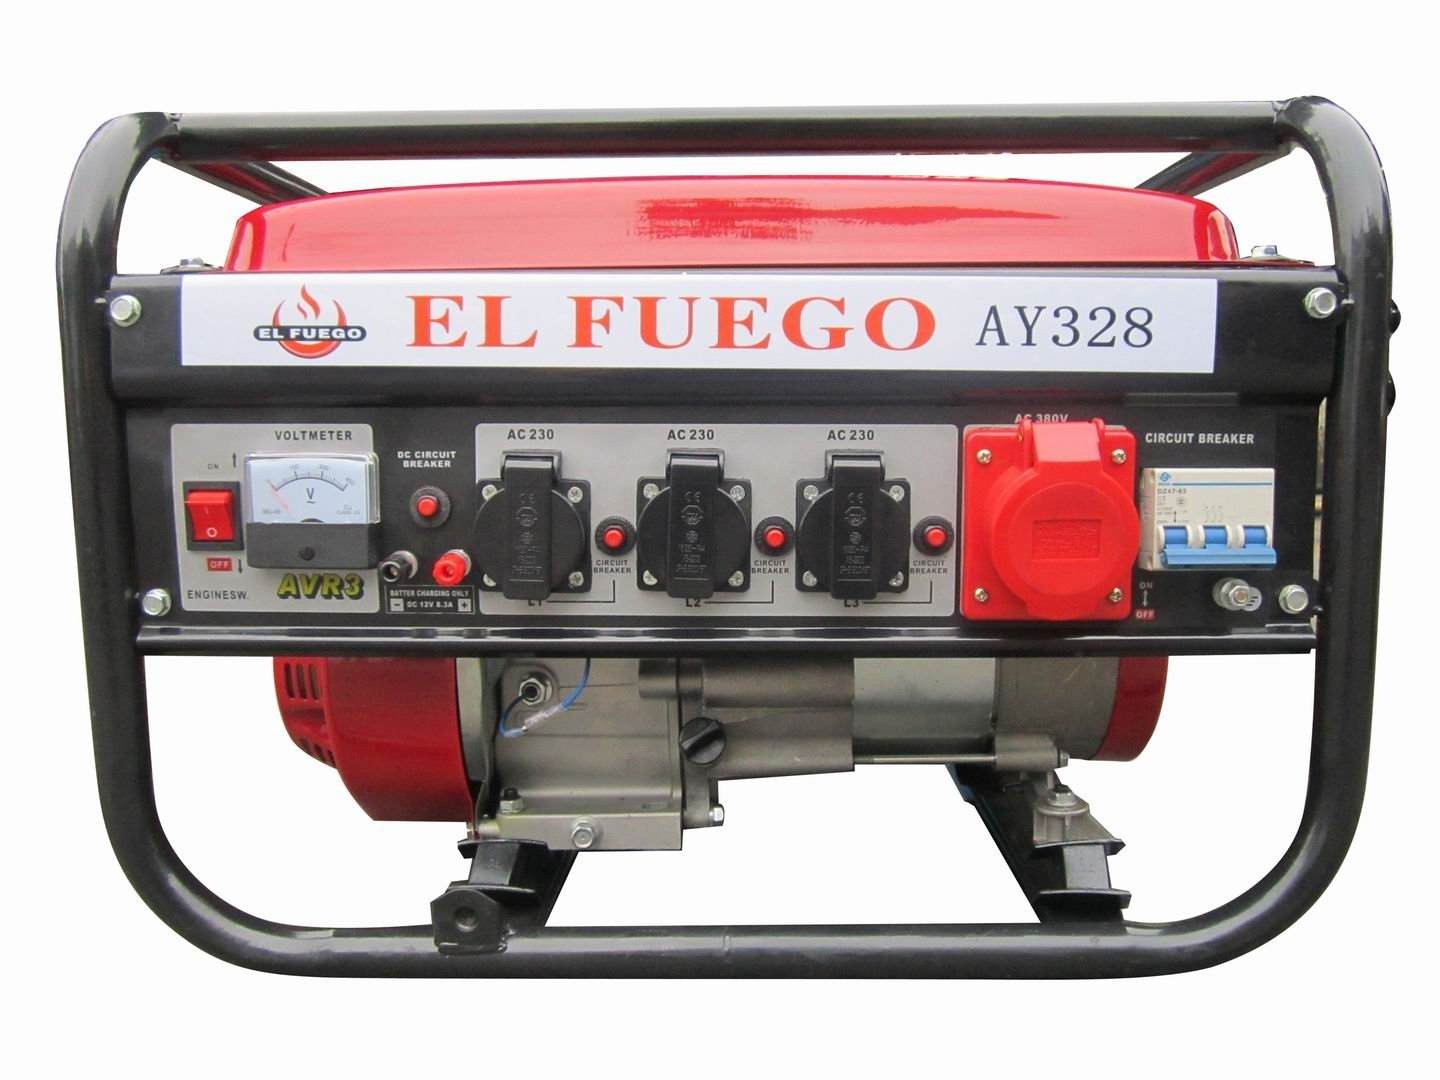 El Fuego Ay 328 Power Generator 55 Ps Garden Outdoors Wiring Dc Circuit Breakers